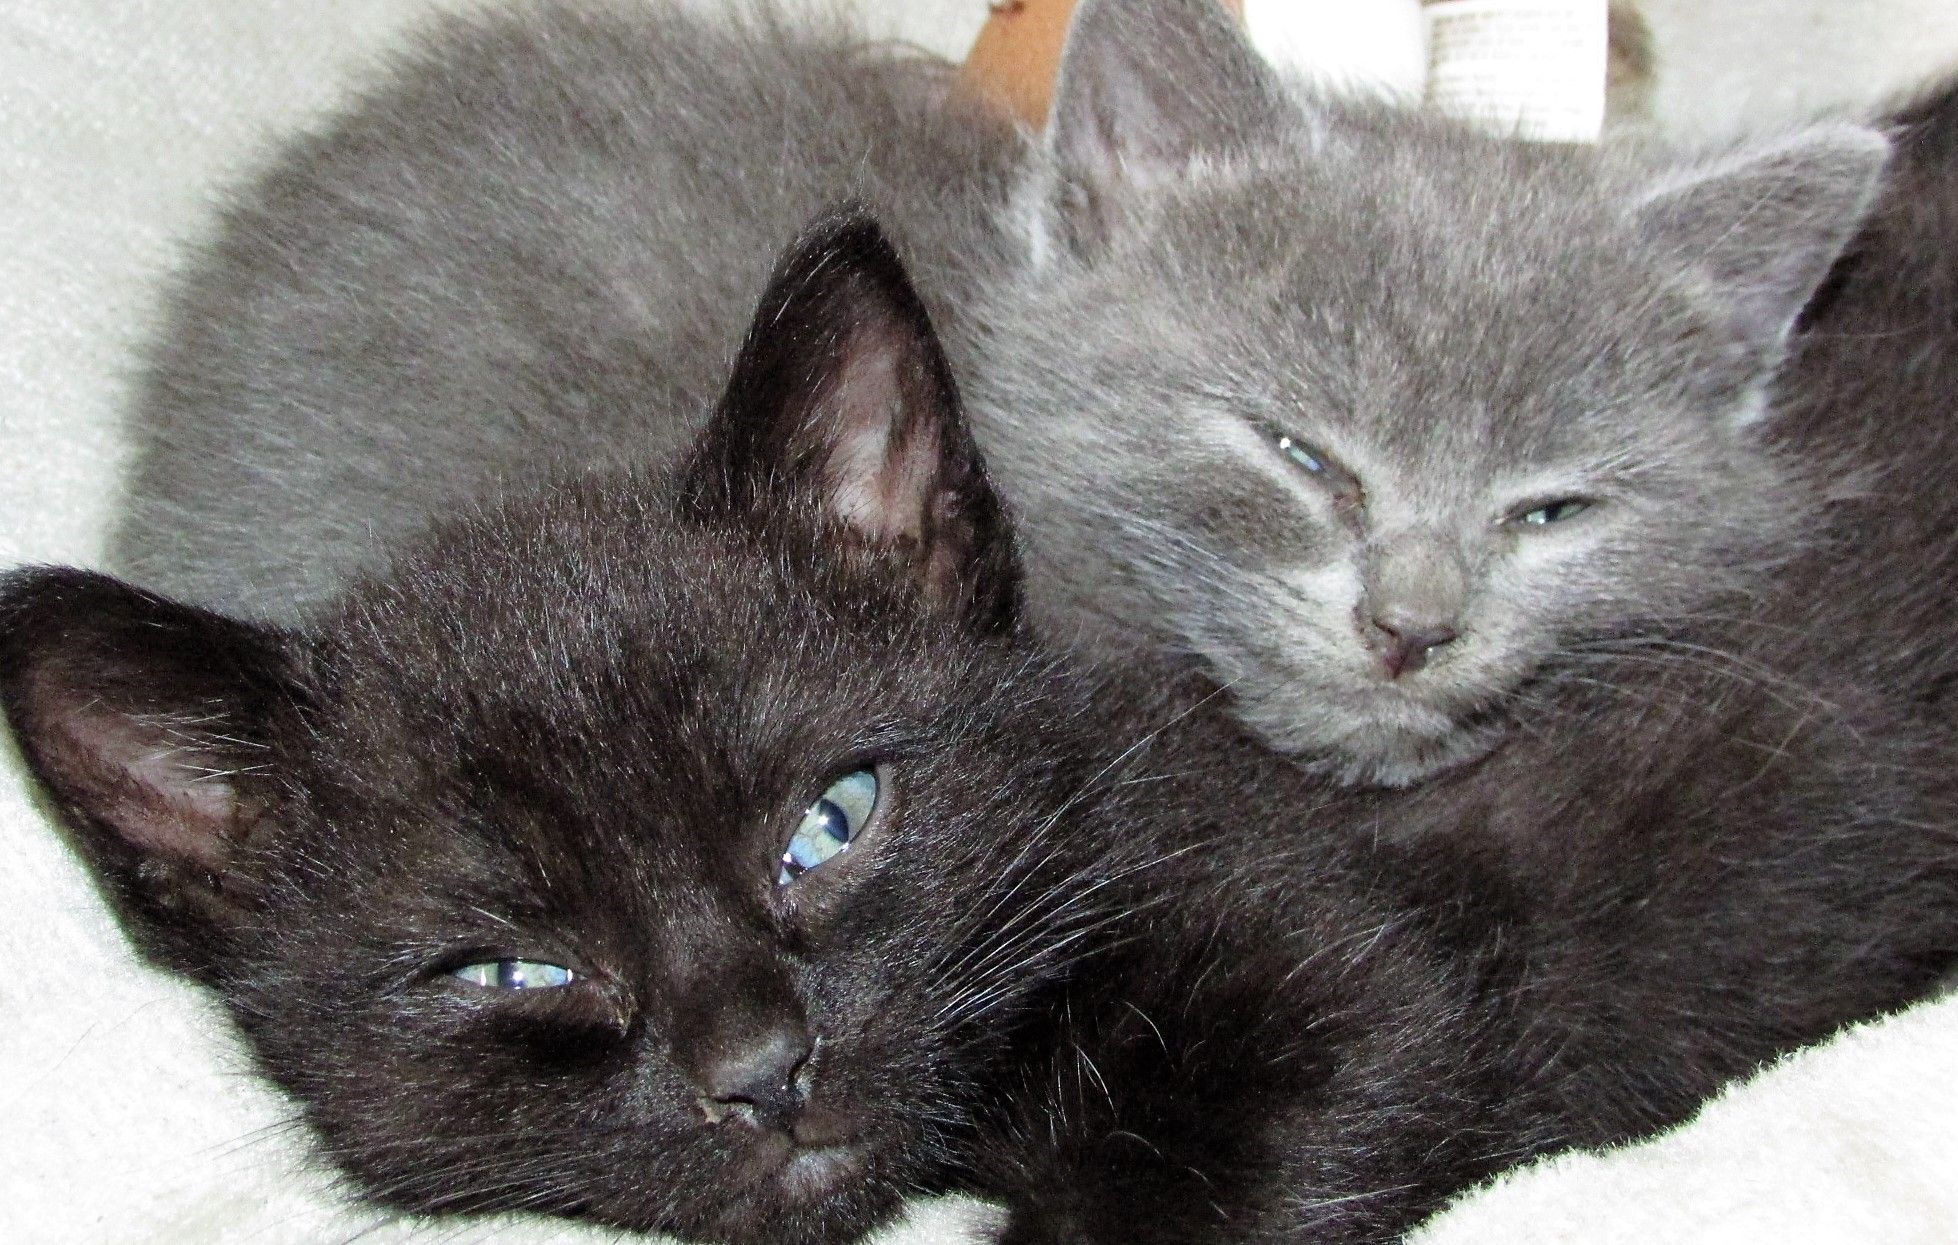 Smokey And Bandit As Kittens They Came To Us Flea Infested And Sick But Are Thriving Now